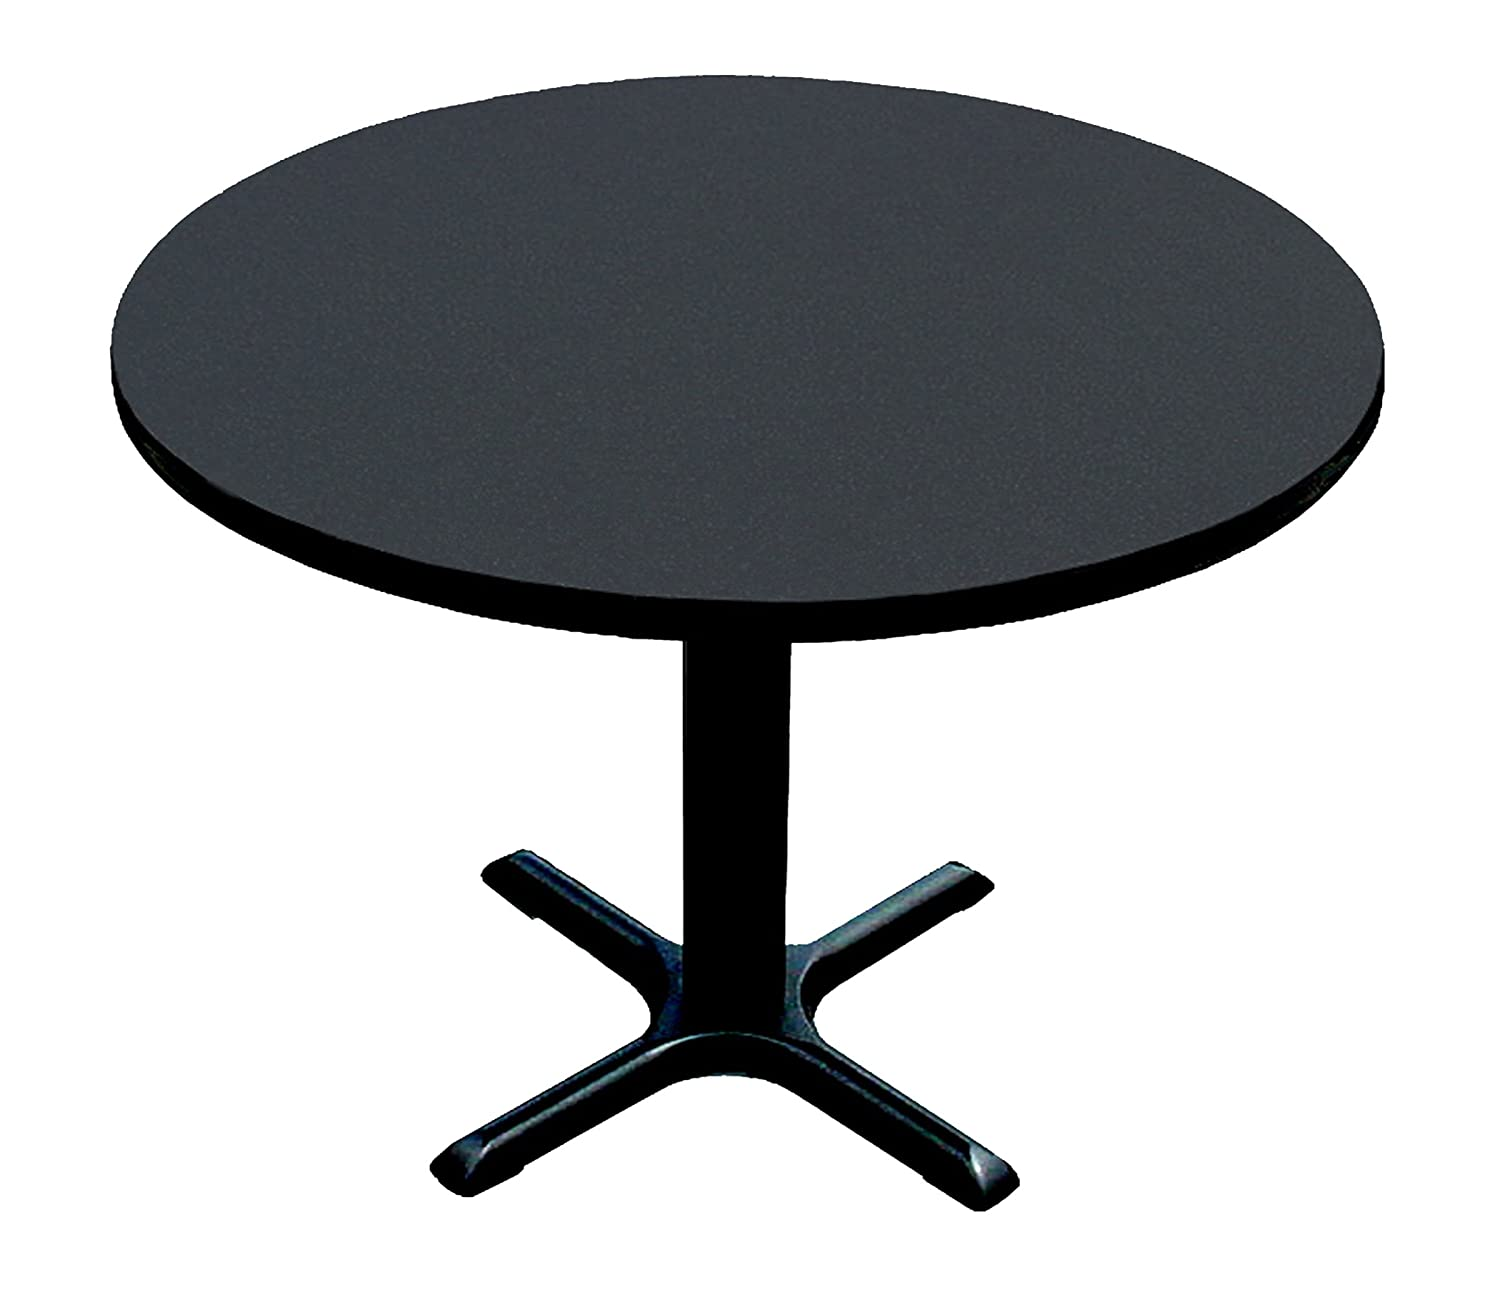 Correll BXT48R-07 Black Granite Top and Black Base Round Bar, Café and Break Room Table, 48""